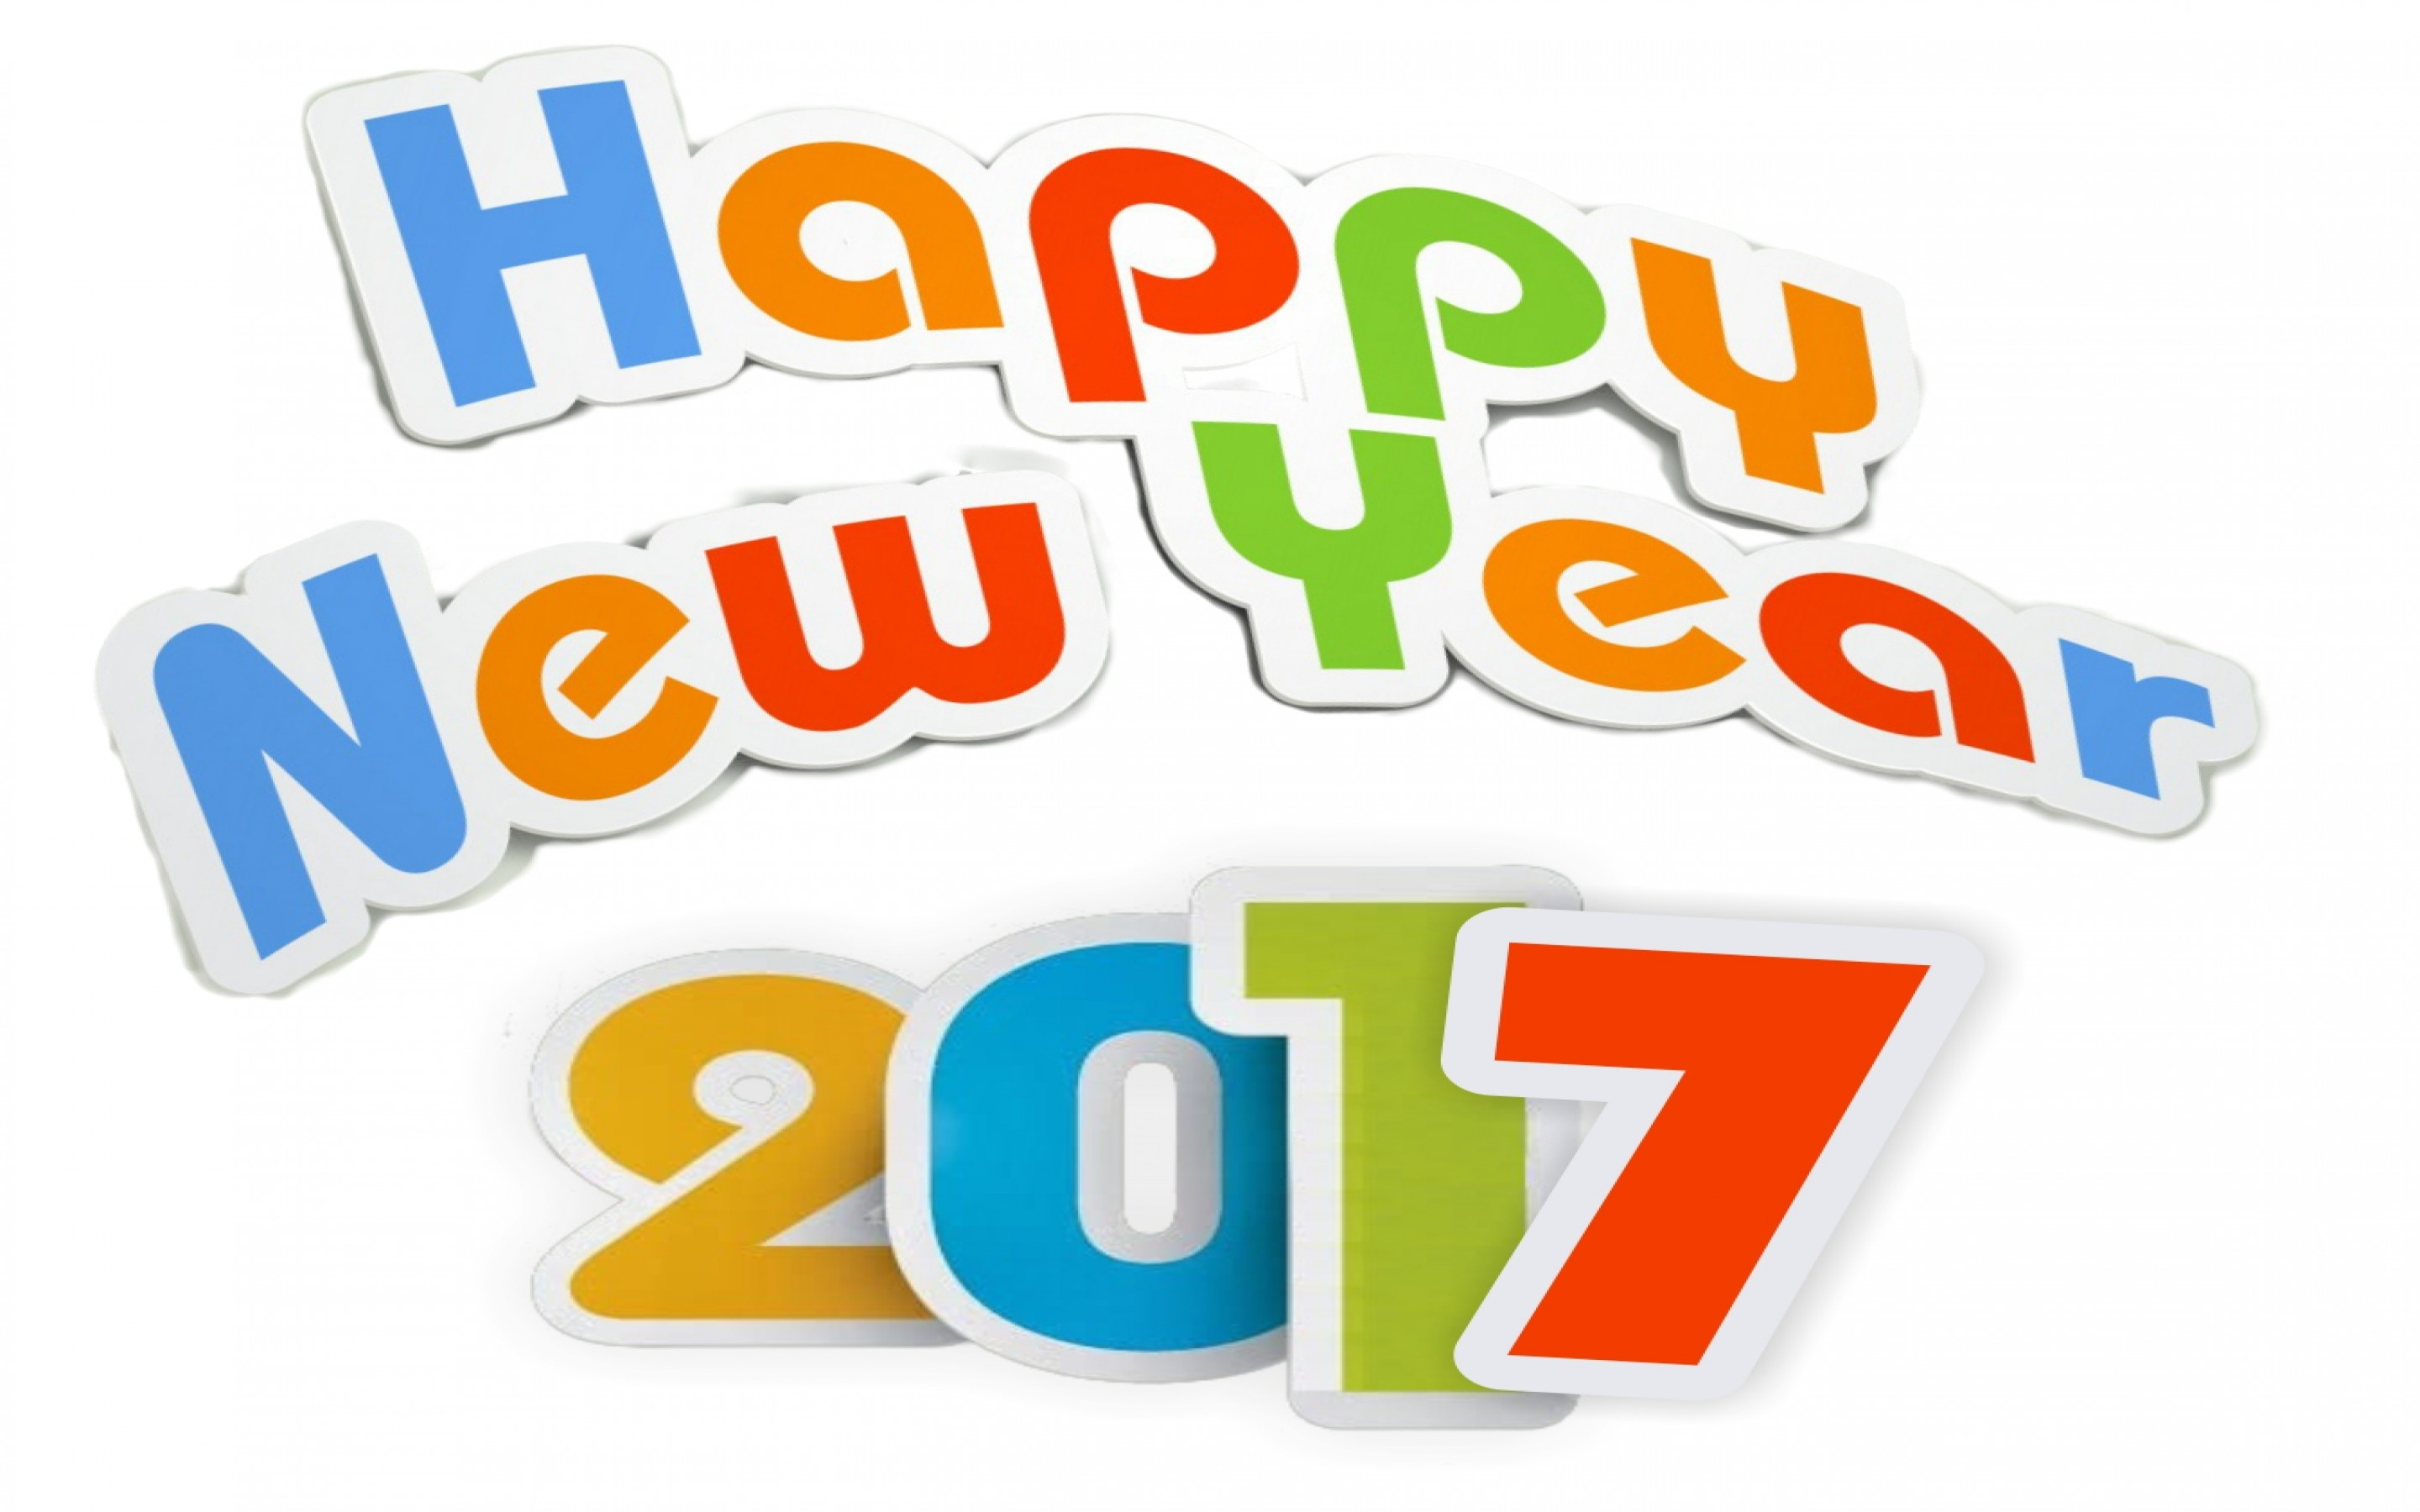 2017 Happy New Year Png - Free Icons and PNG Backgrounds